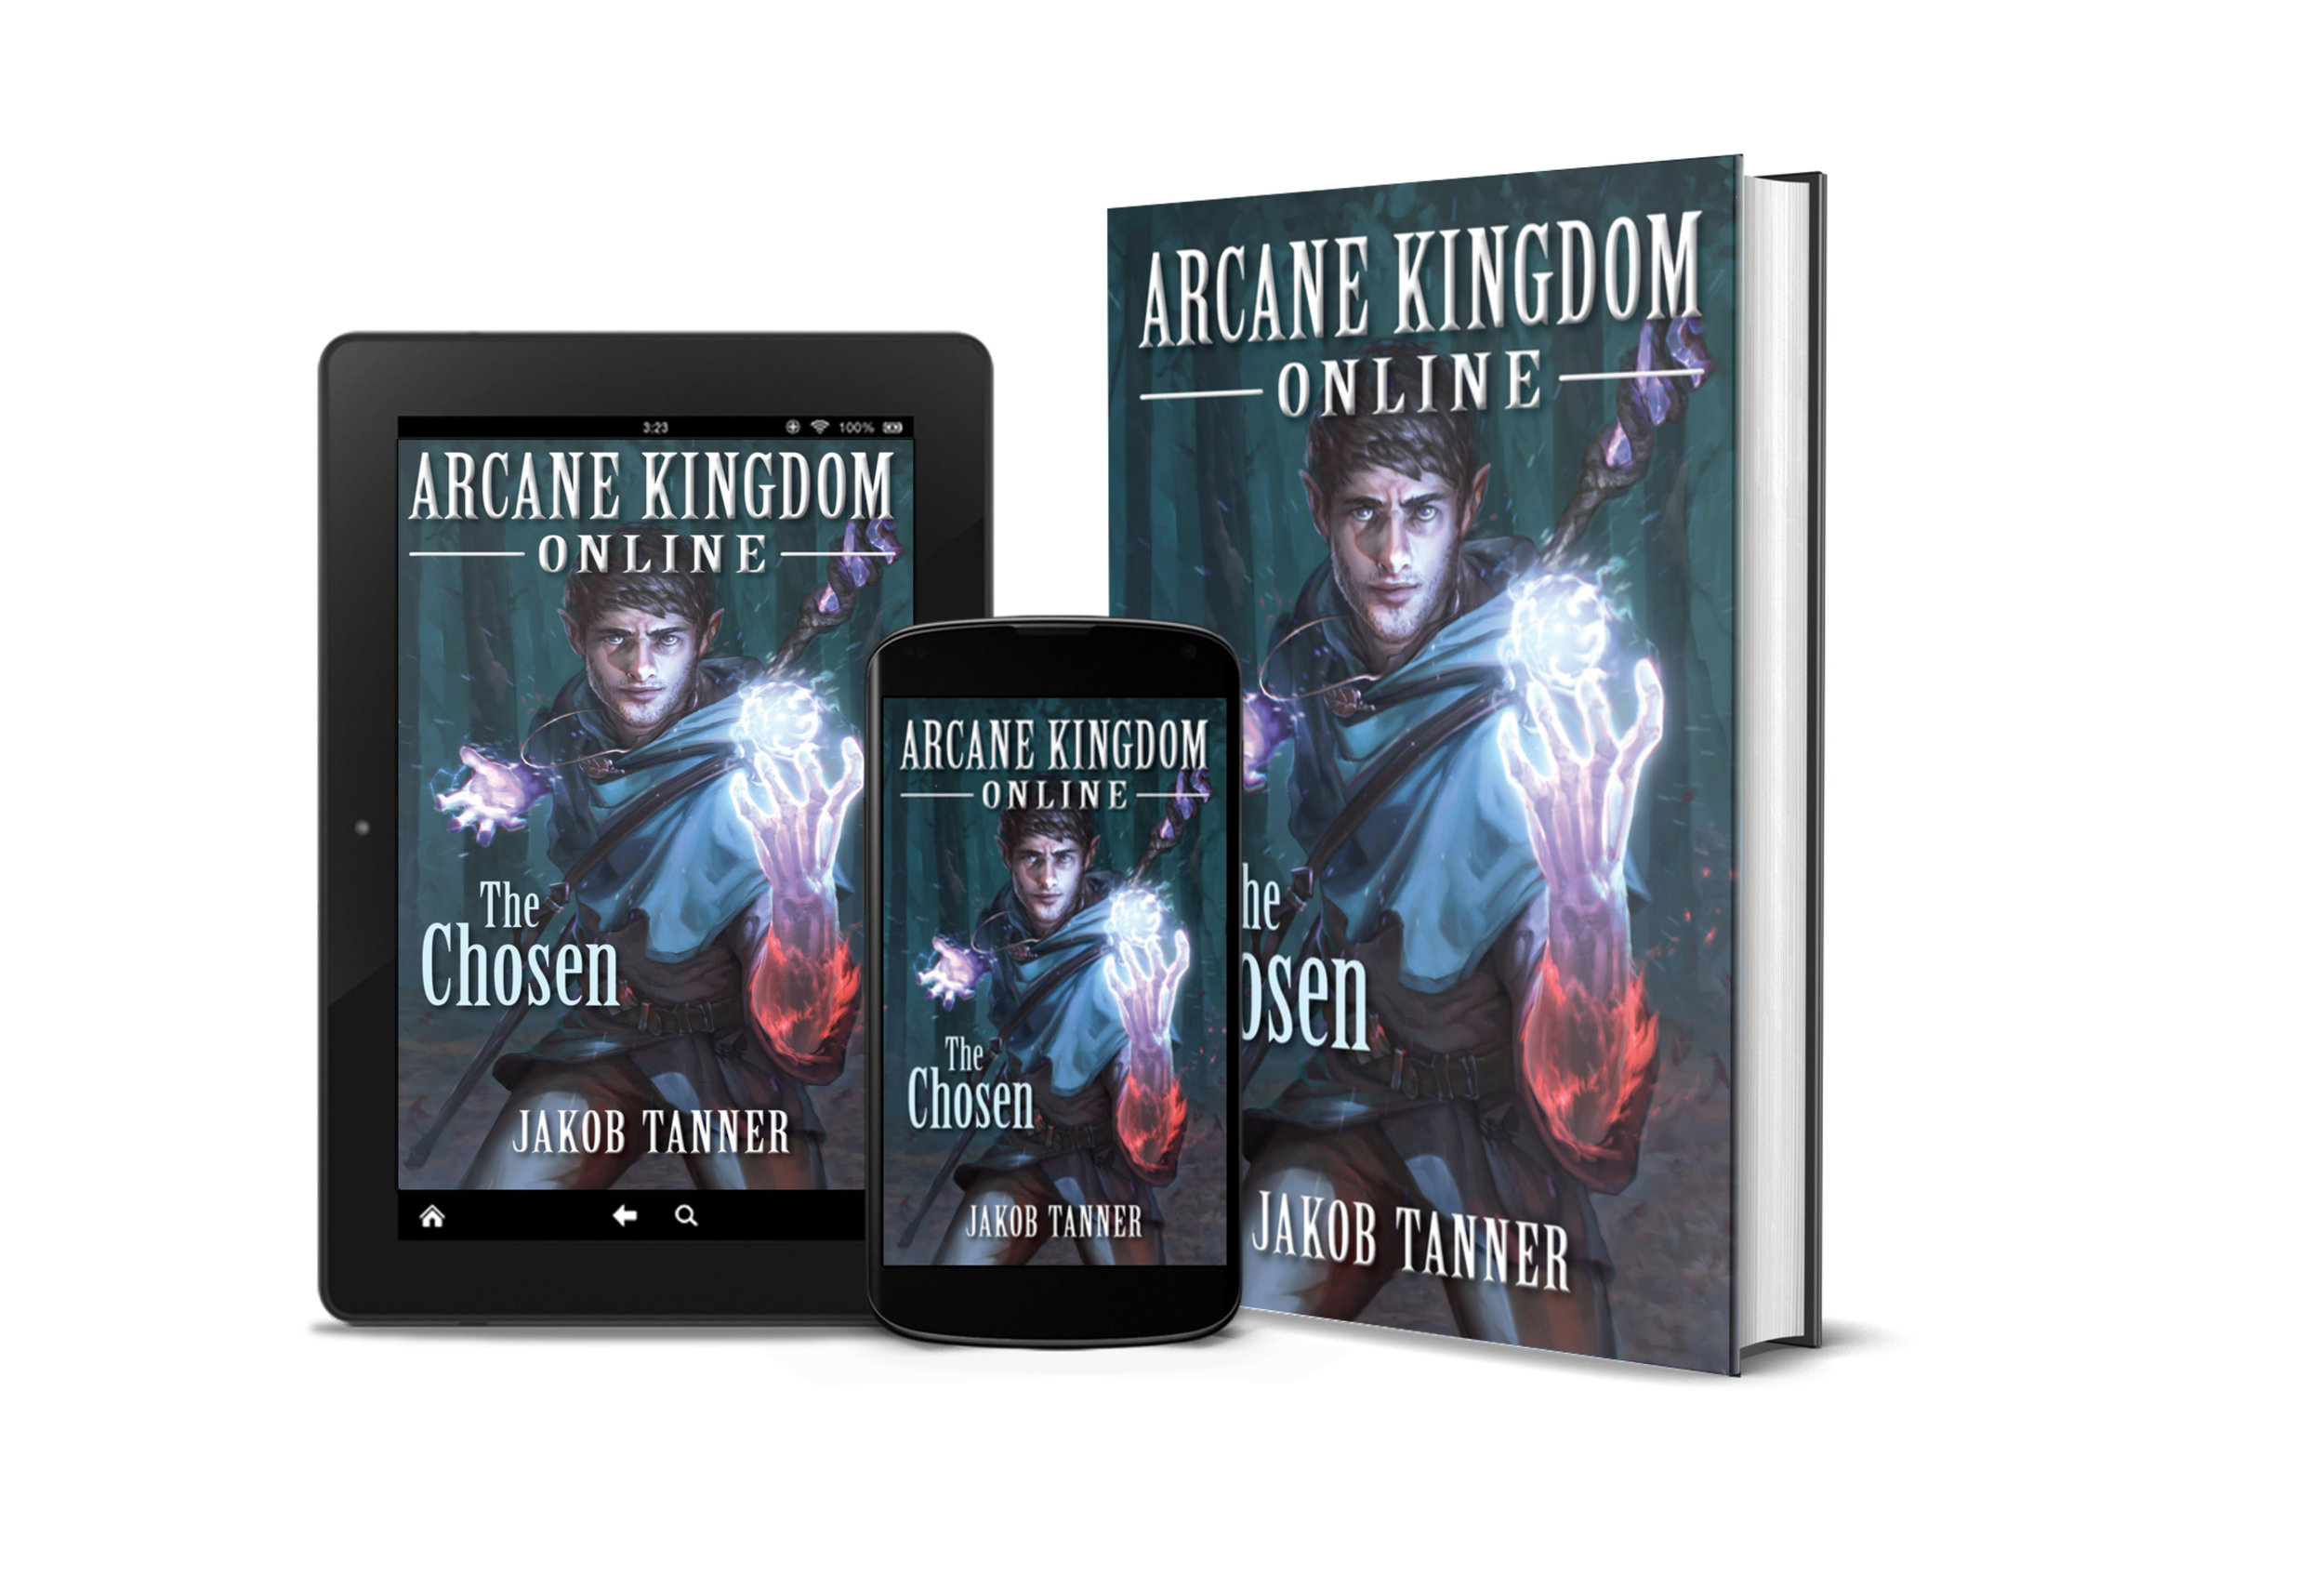 Welcome - Hello! I'm Jakob Tanner, author of the LitRPG series, Arcane Kingdom Online. My books combine my love of fantasy, anime, and video games into an action-packed page-turning experience.